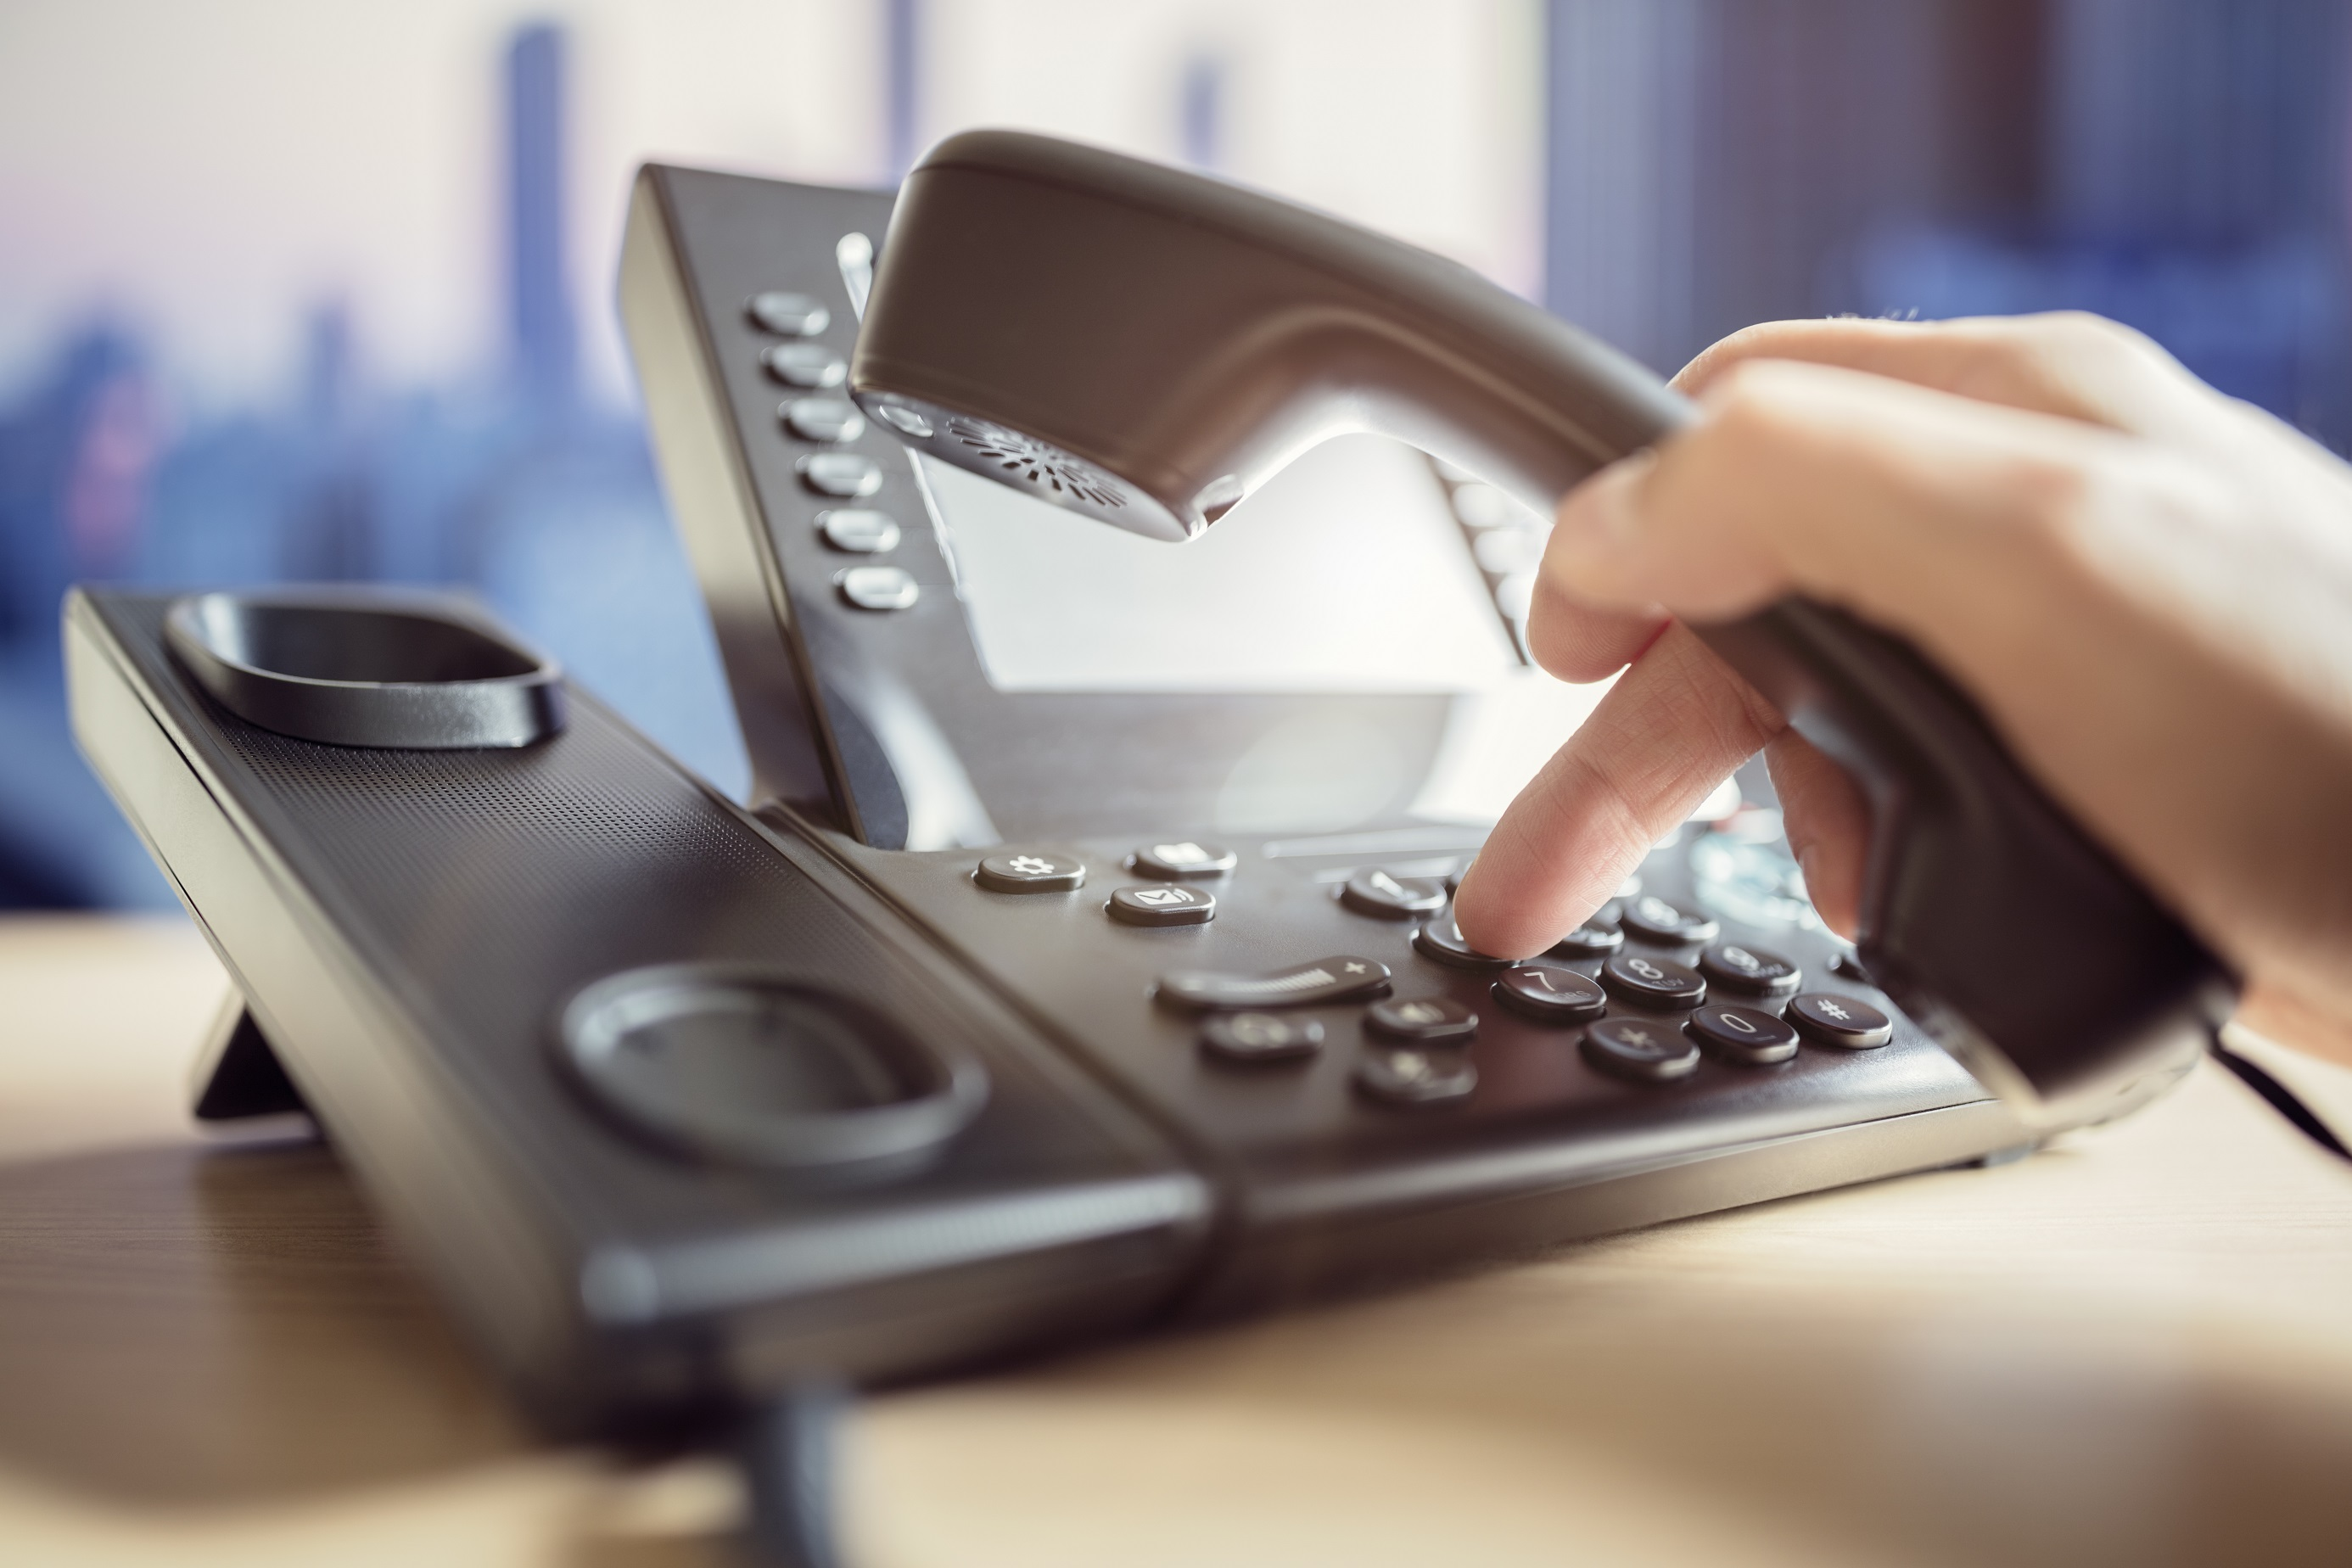 Image of a phone for business landlines page by business telephony experts, Claritel